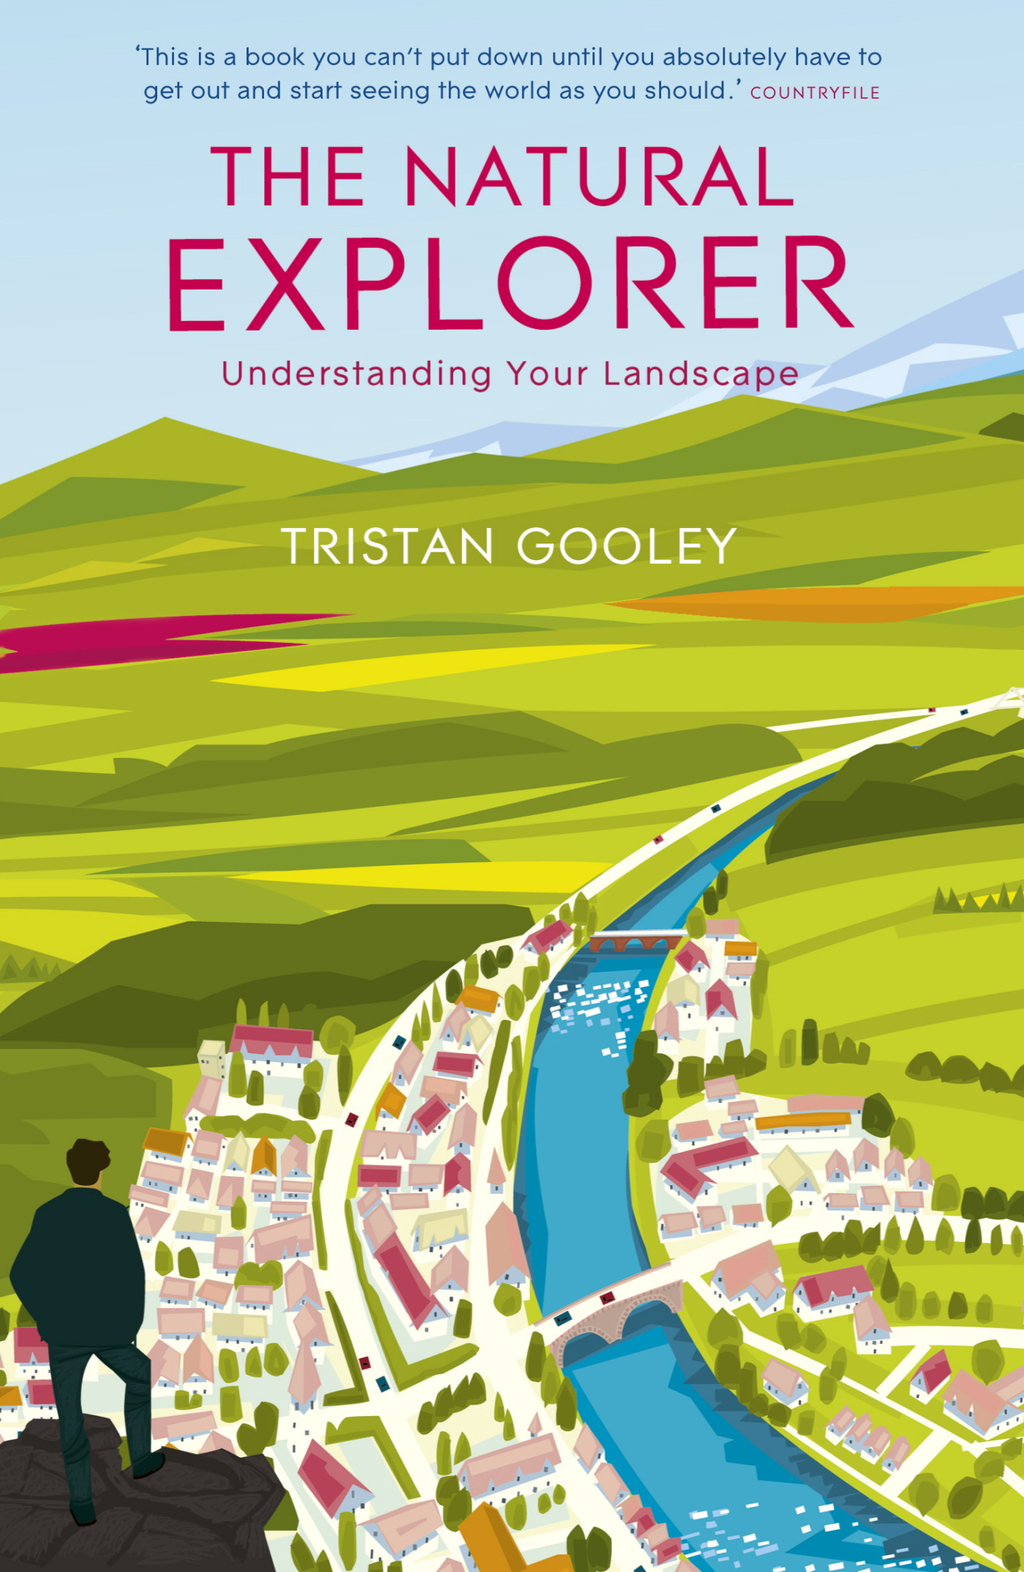 The Natural Explorer: Understanding Your Landscape Understanding Your Landscape